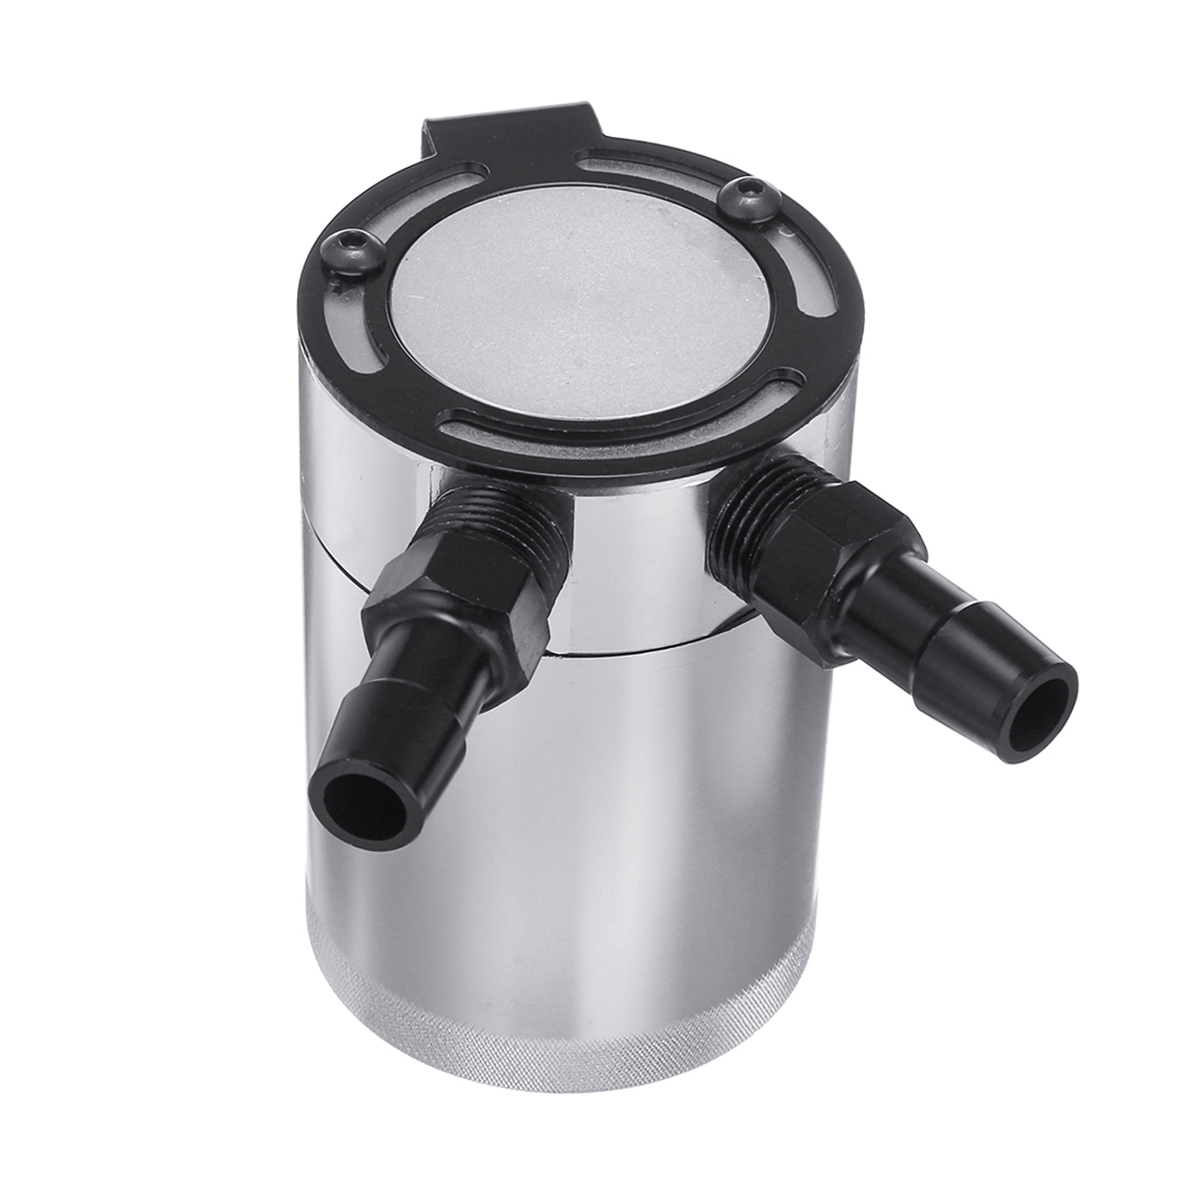 Car Compact Baffled 2-Port Aluminum Oil Catch Can Reservoir Tank Oil Catch Can Fuel Tank Parts Two hole breathable Kettle